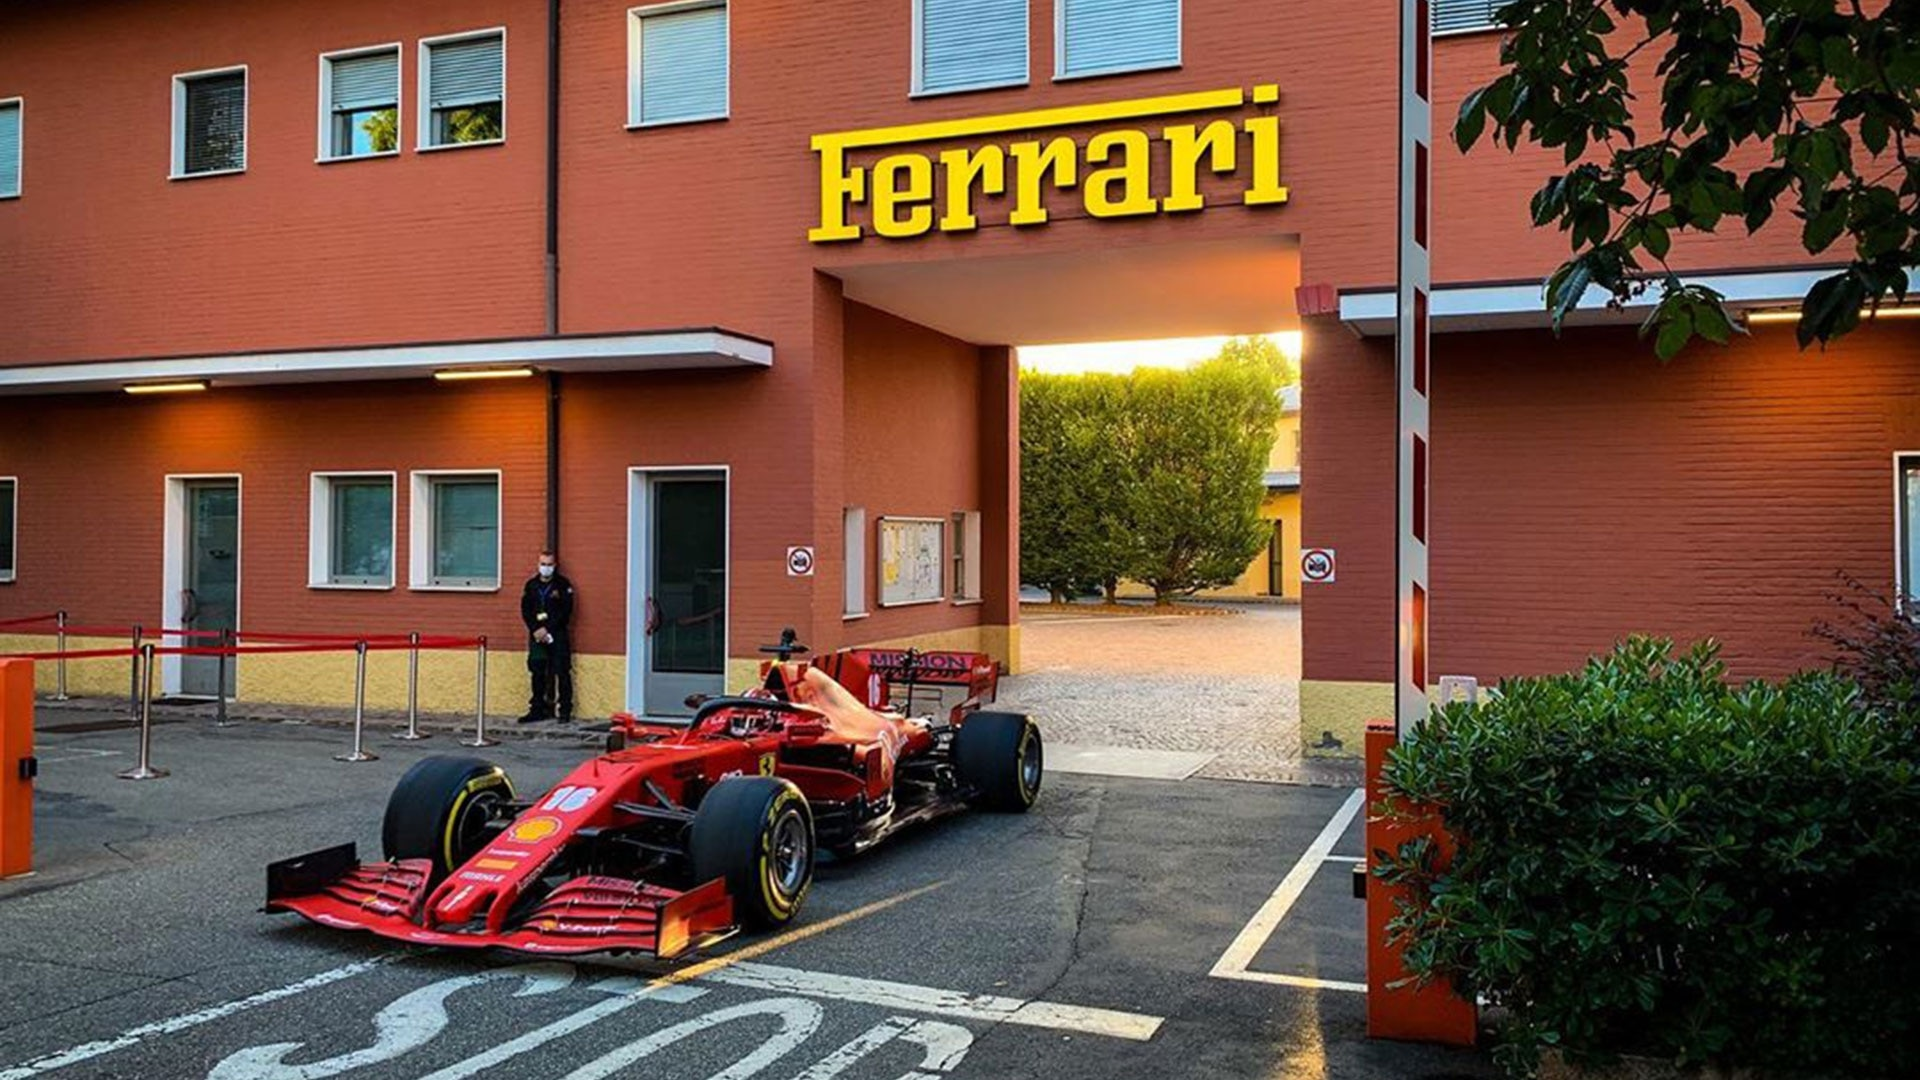 Ferrari S Goal To Celebrate Its 1000 Formula 1 Races In Italy World Today News